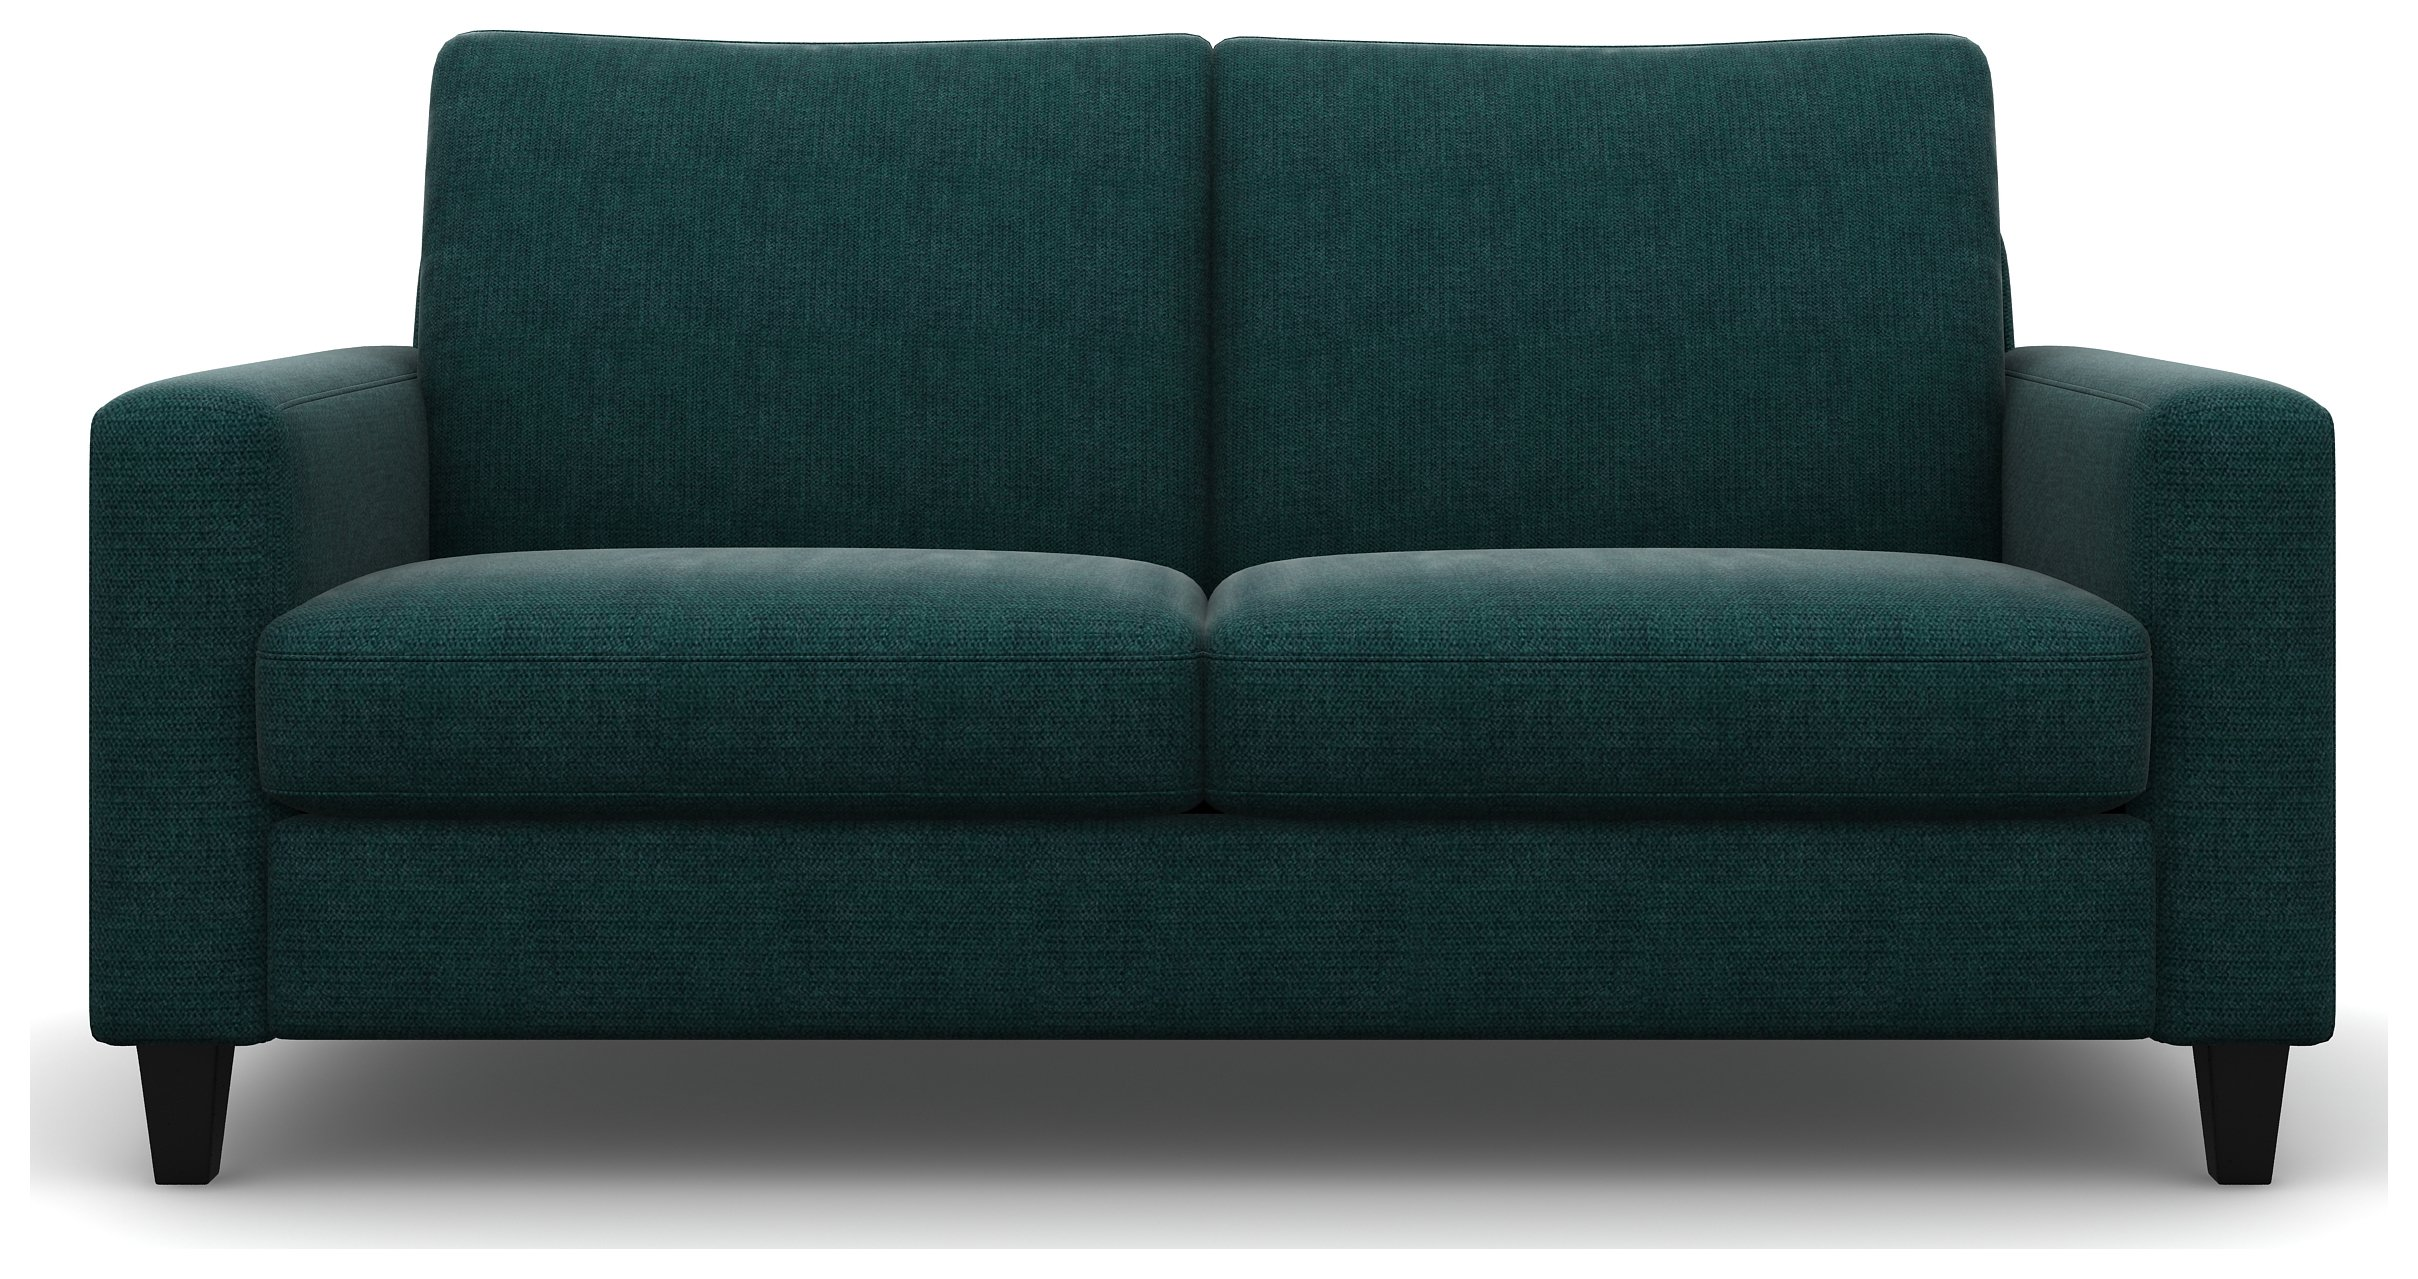 Heart of House Harrison 3 Seater Fabric Sofa - Ocean + Black Legs.